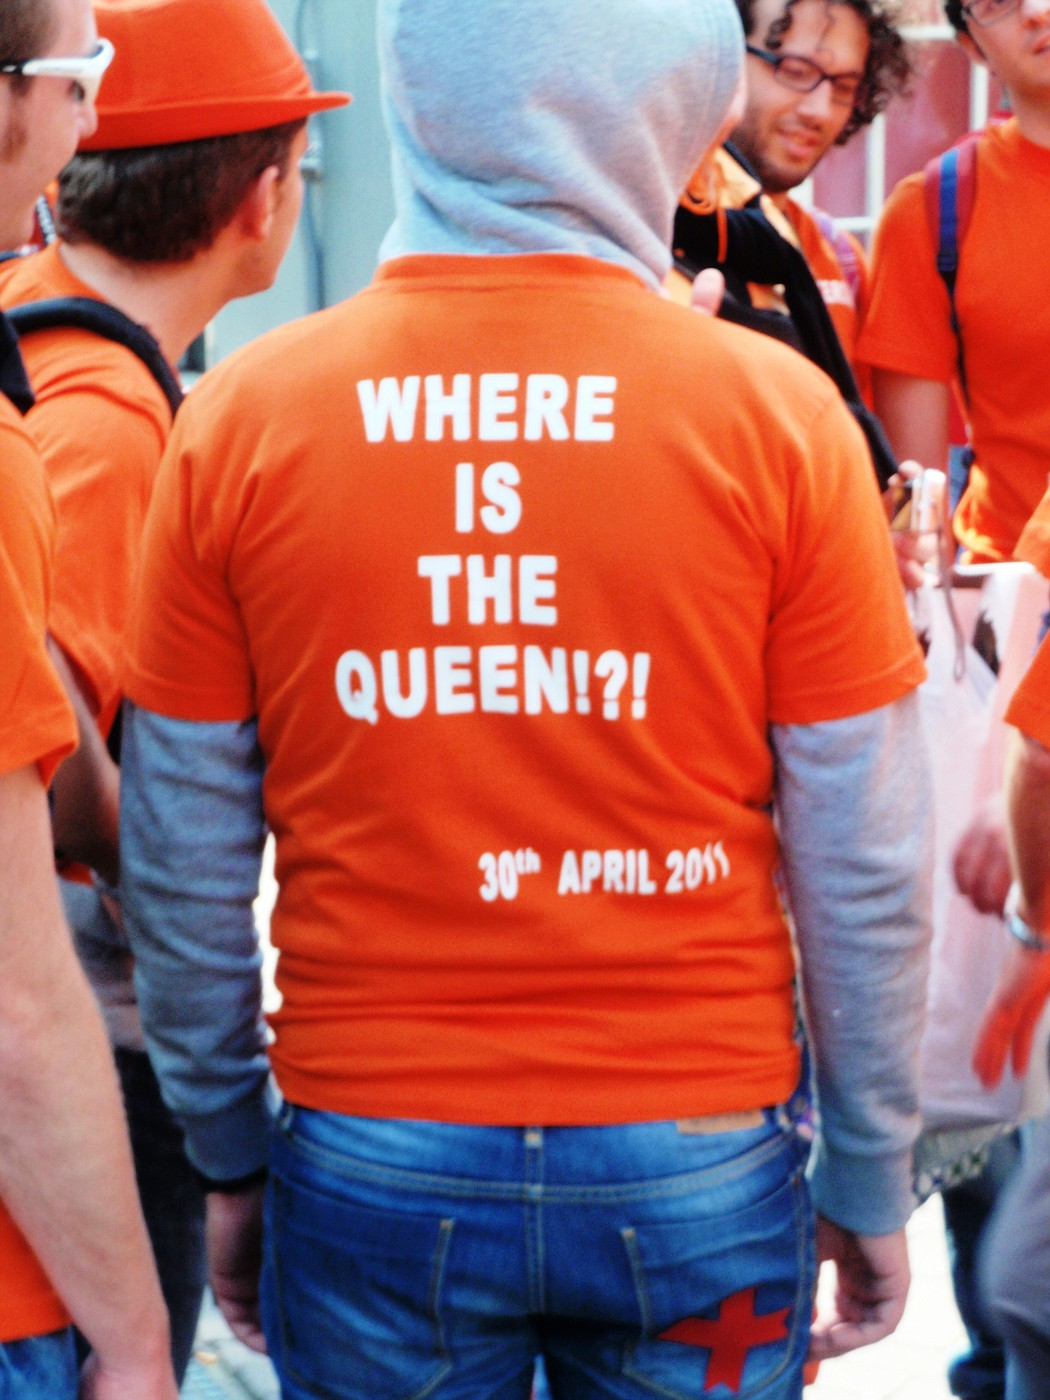 Where is the Queen?